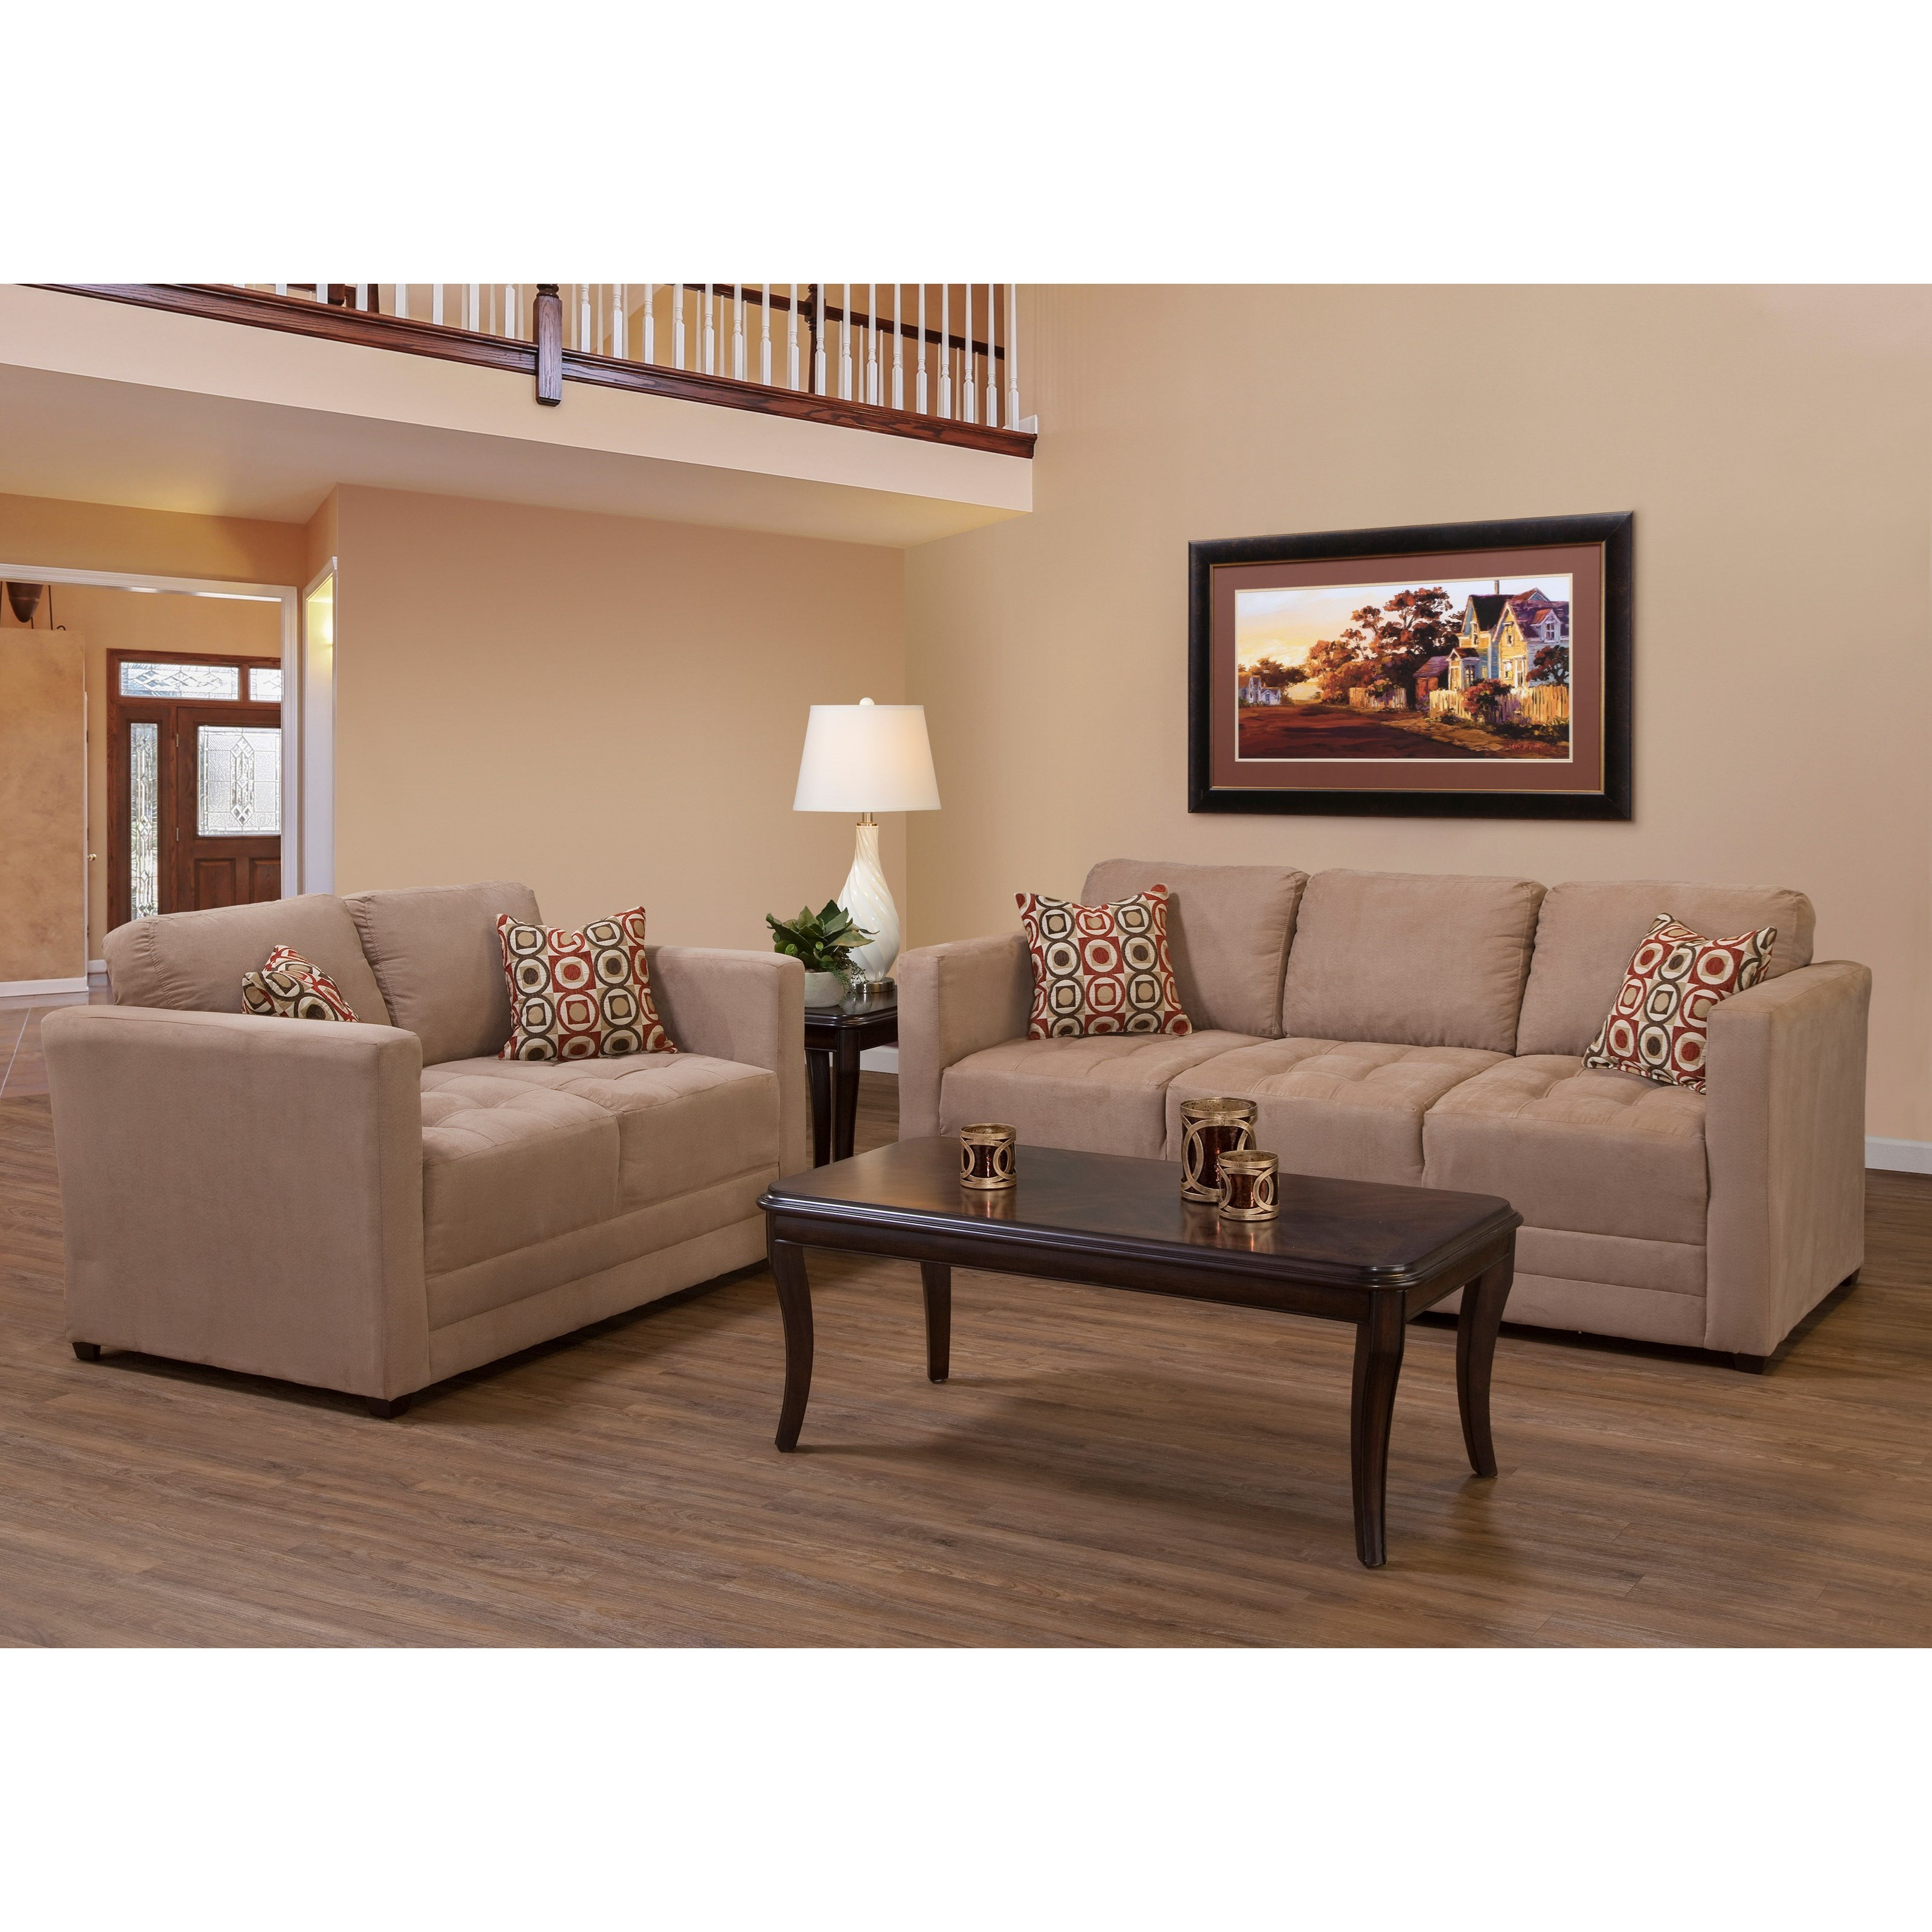 Serta Upholstery By Hughes Furniture 1085 Contemporary Sofa With Tufted Seats Vandrie Home